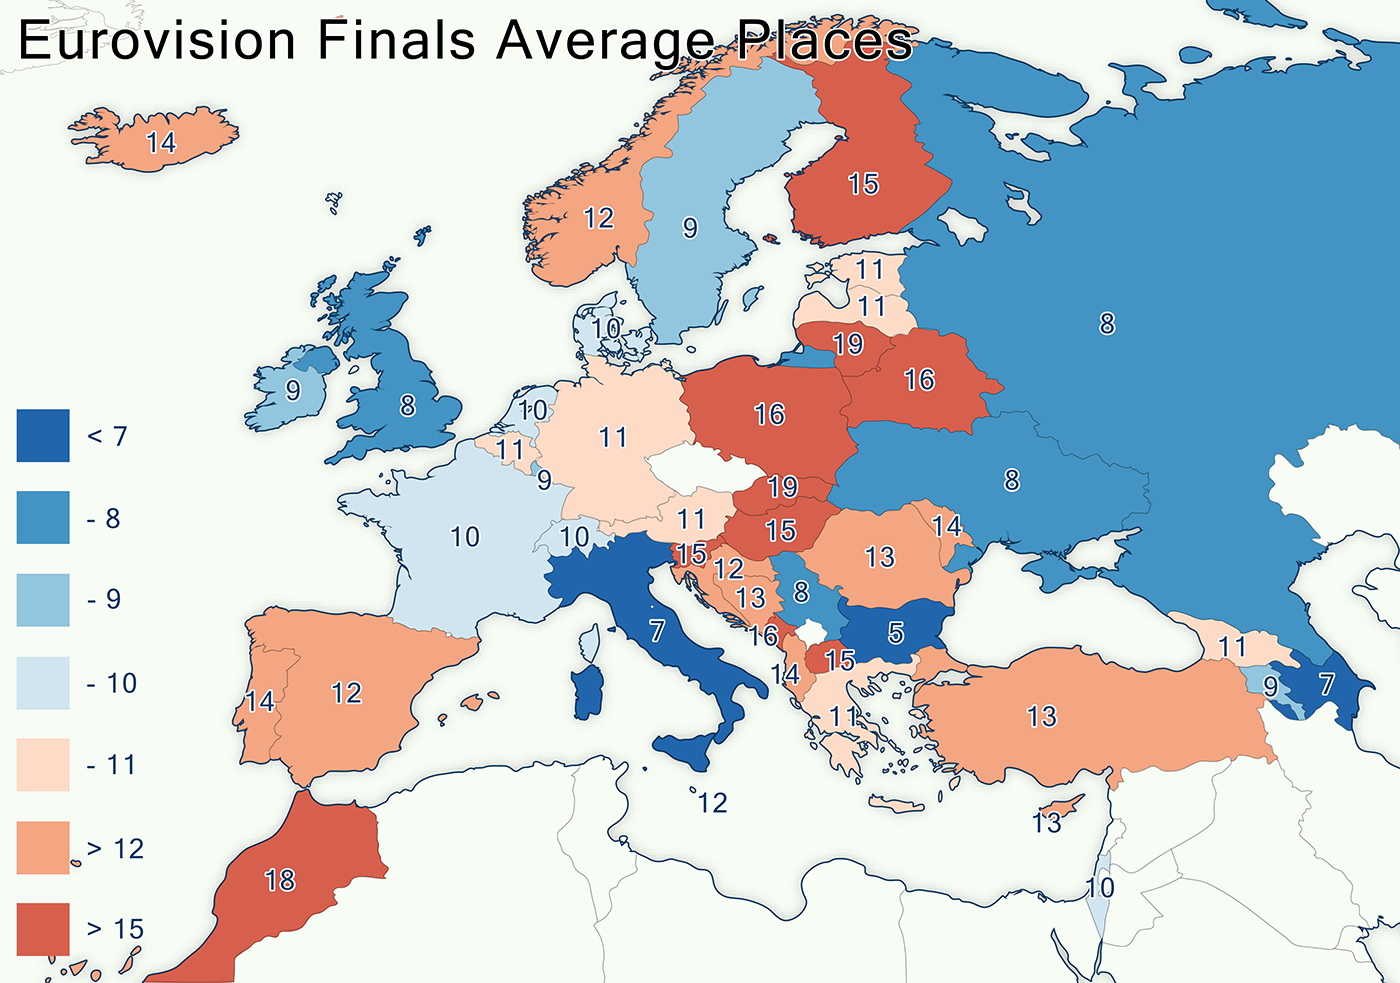 Eurovision finals average places